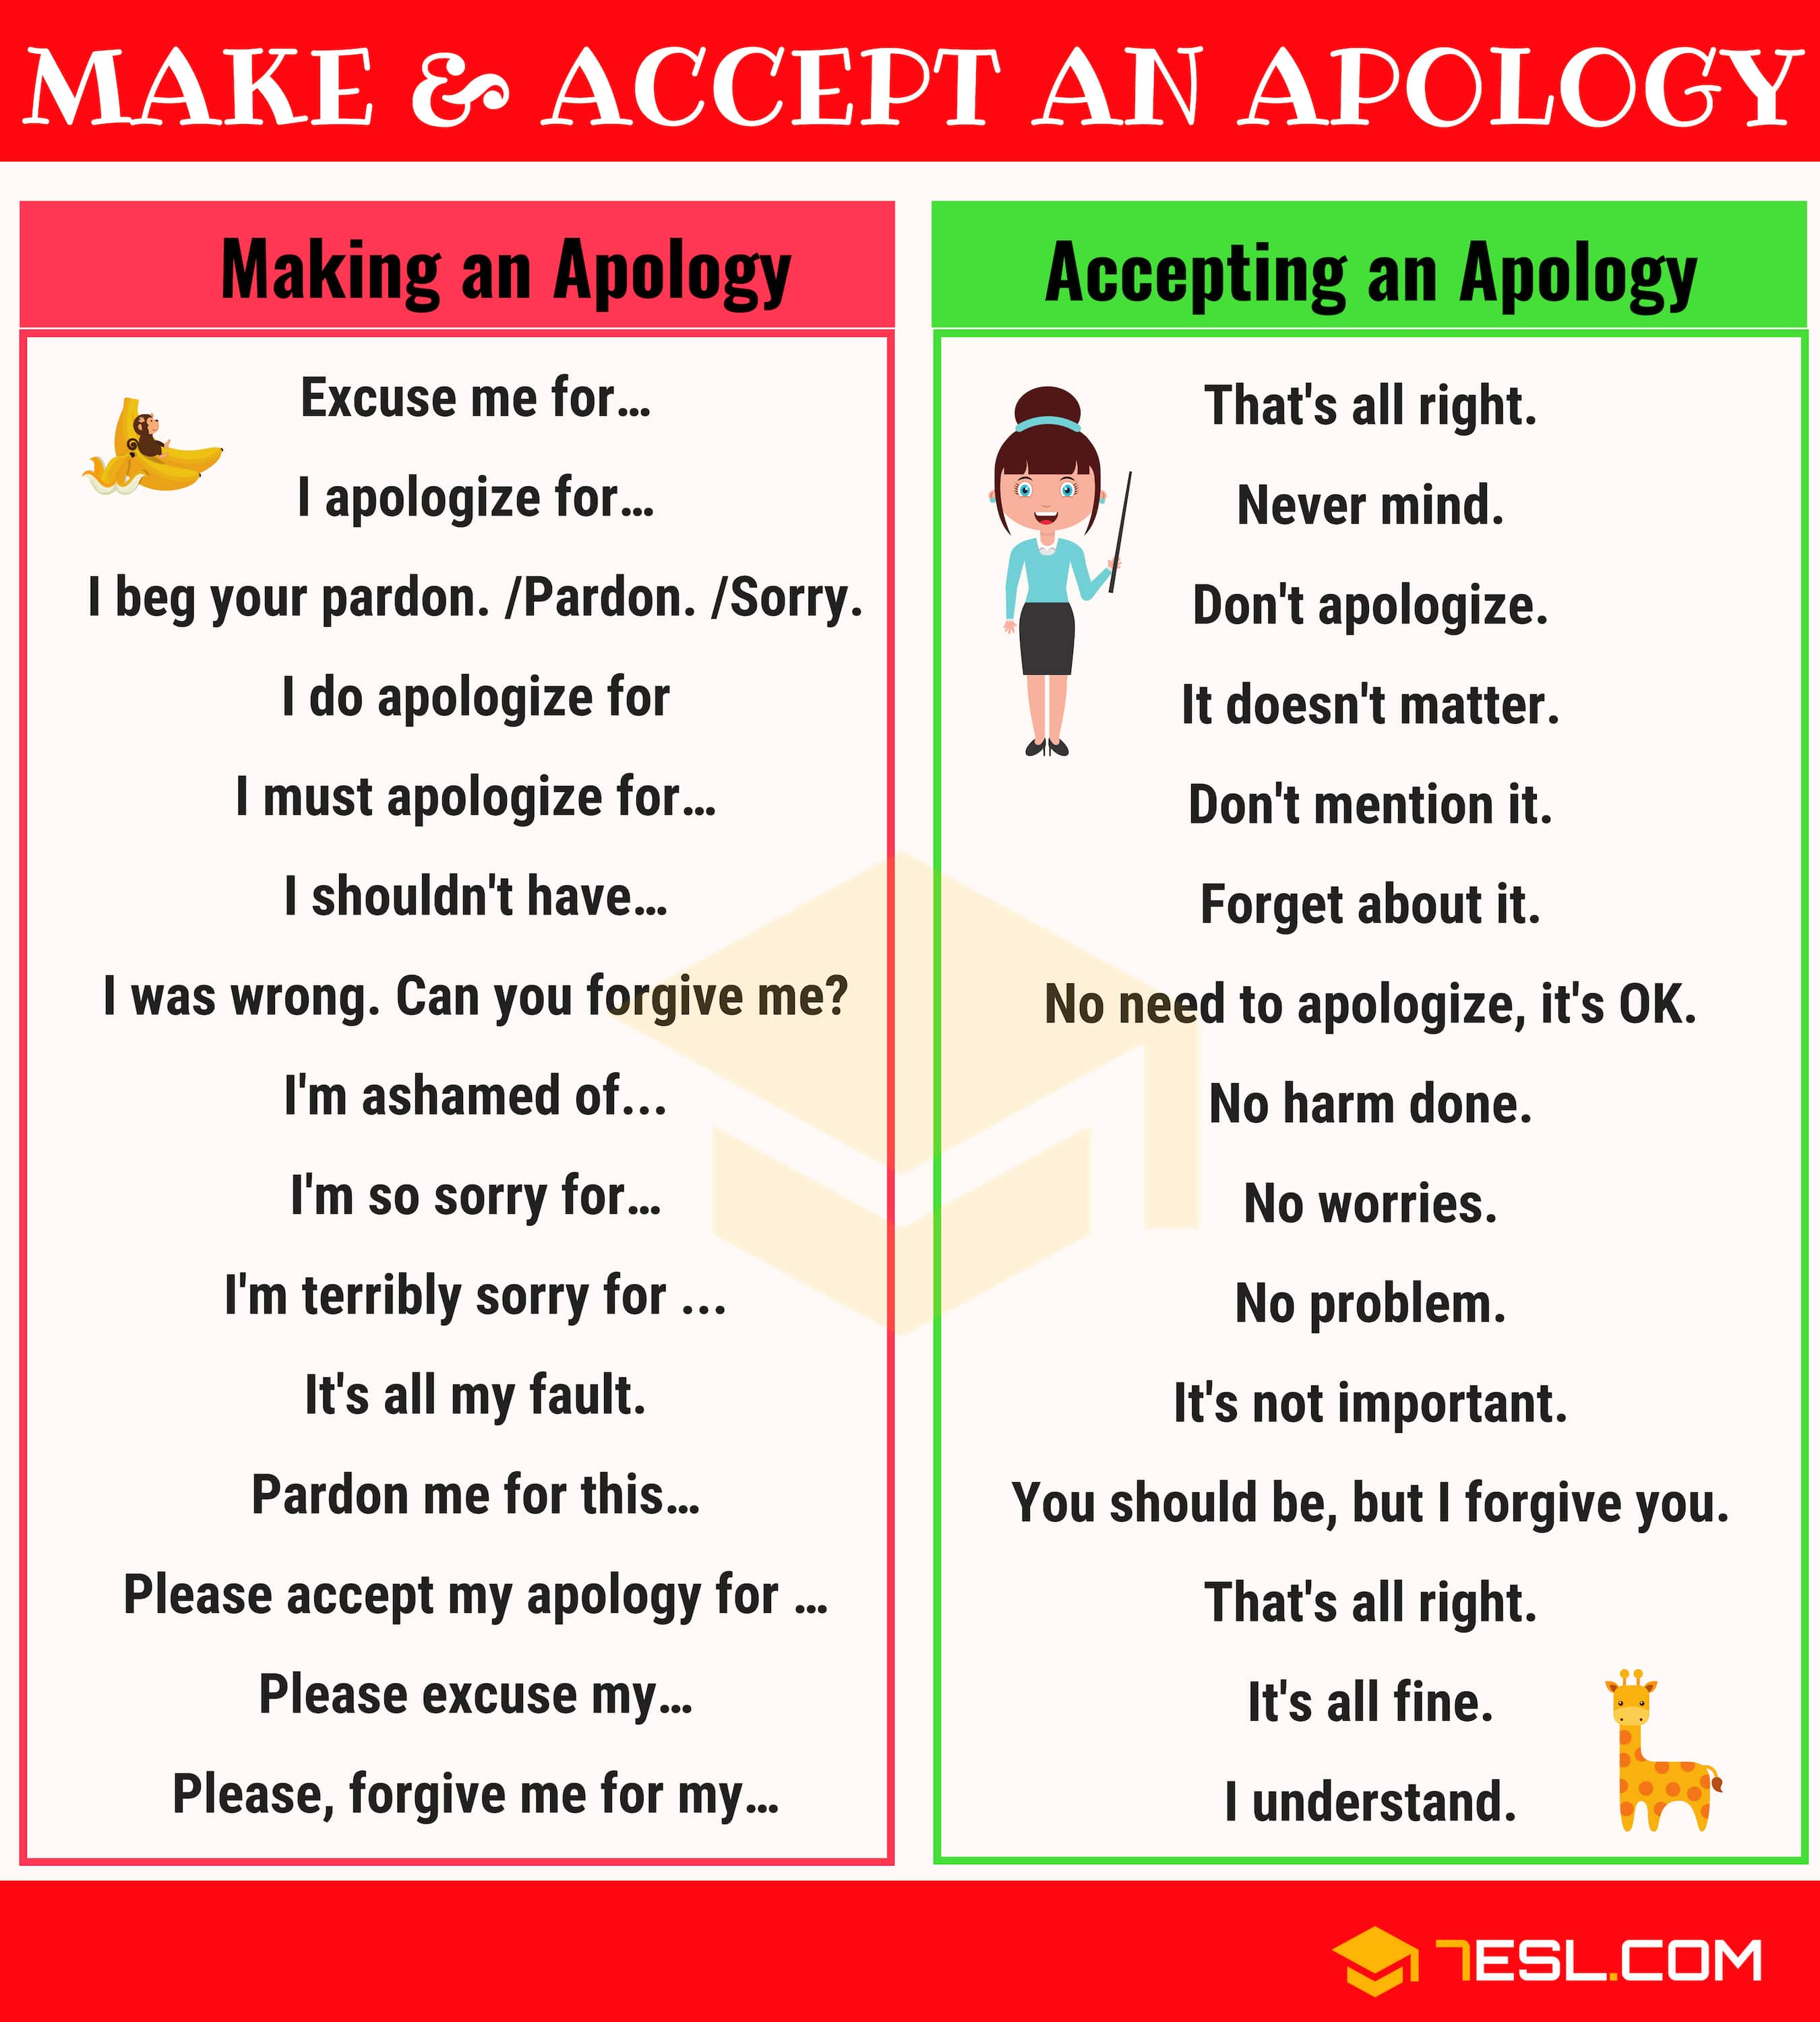 How to Make and Accept an Apology in English